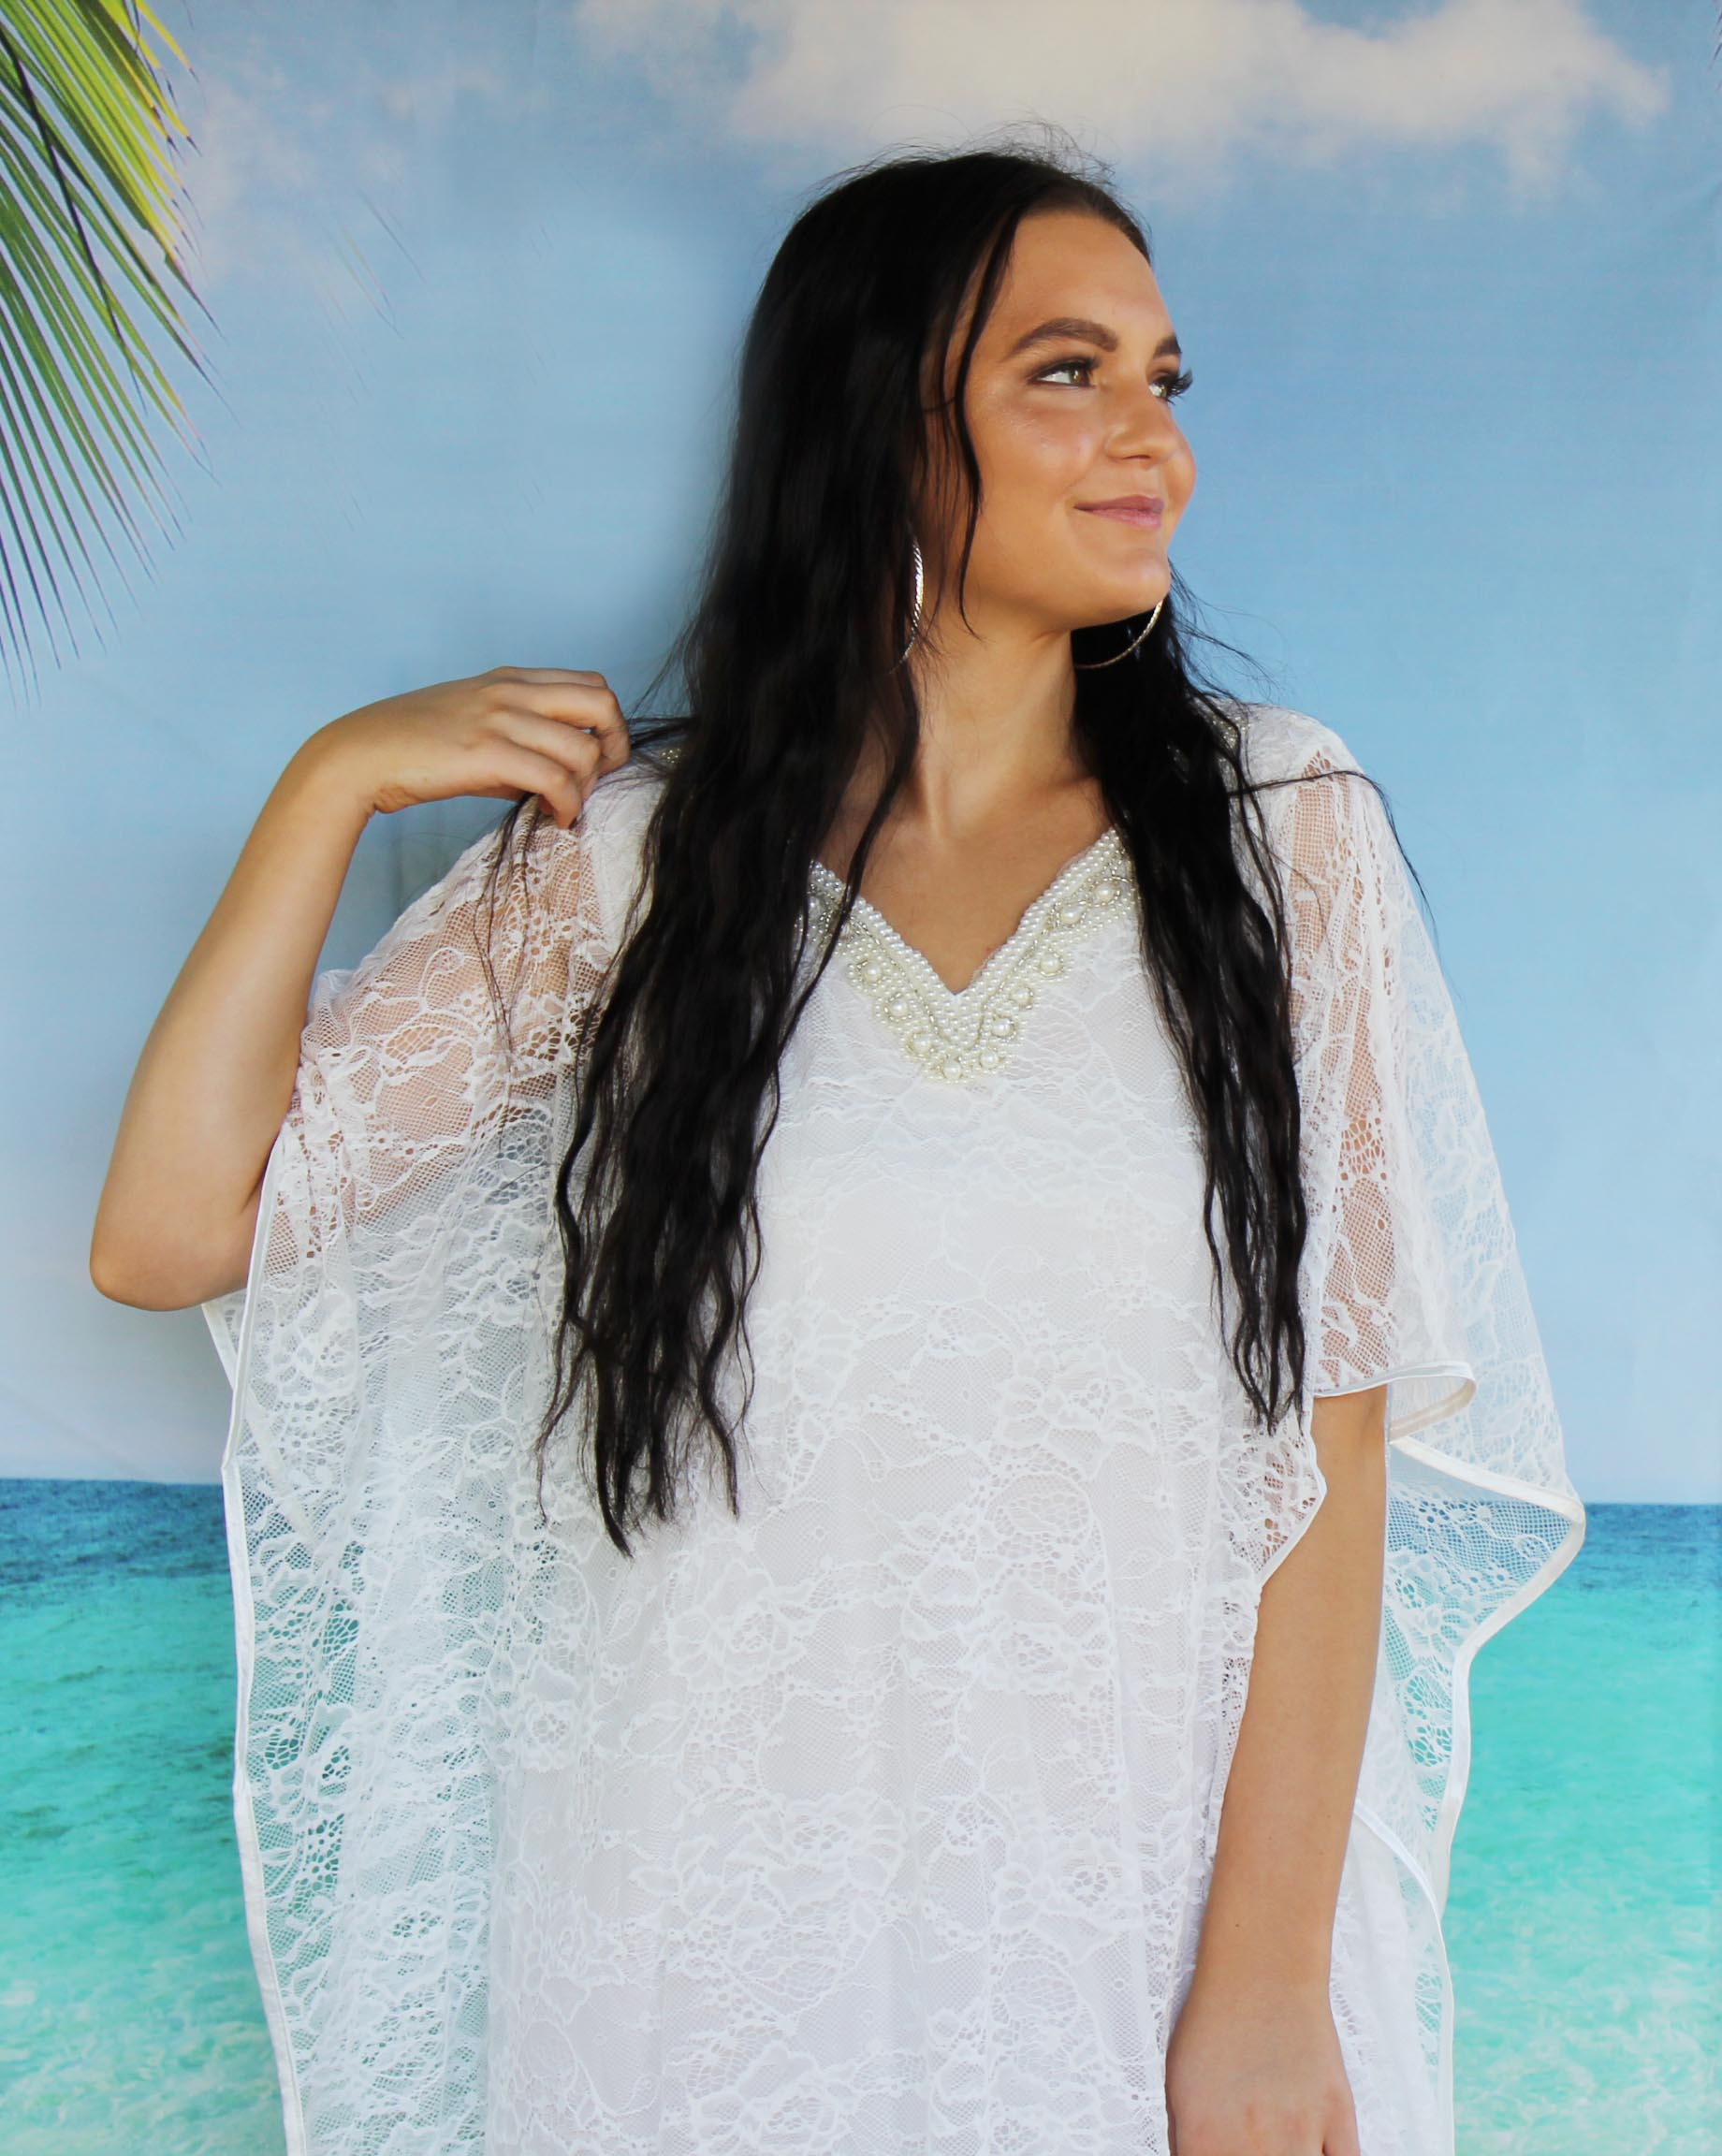 Esther Kaftan White - Purity Lace Designs